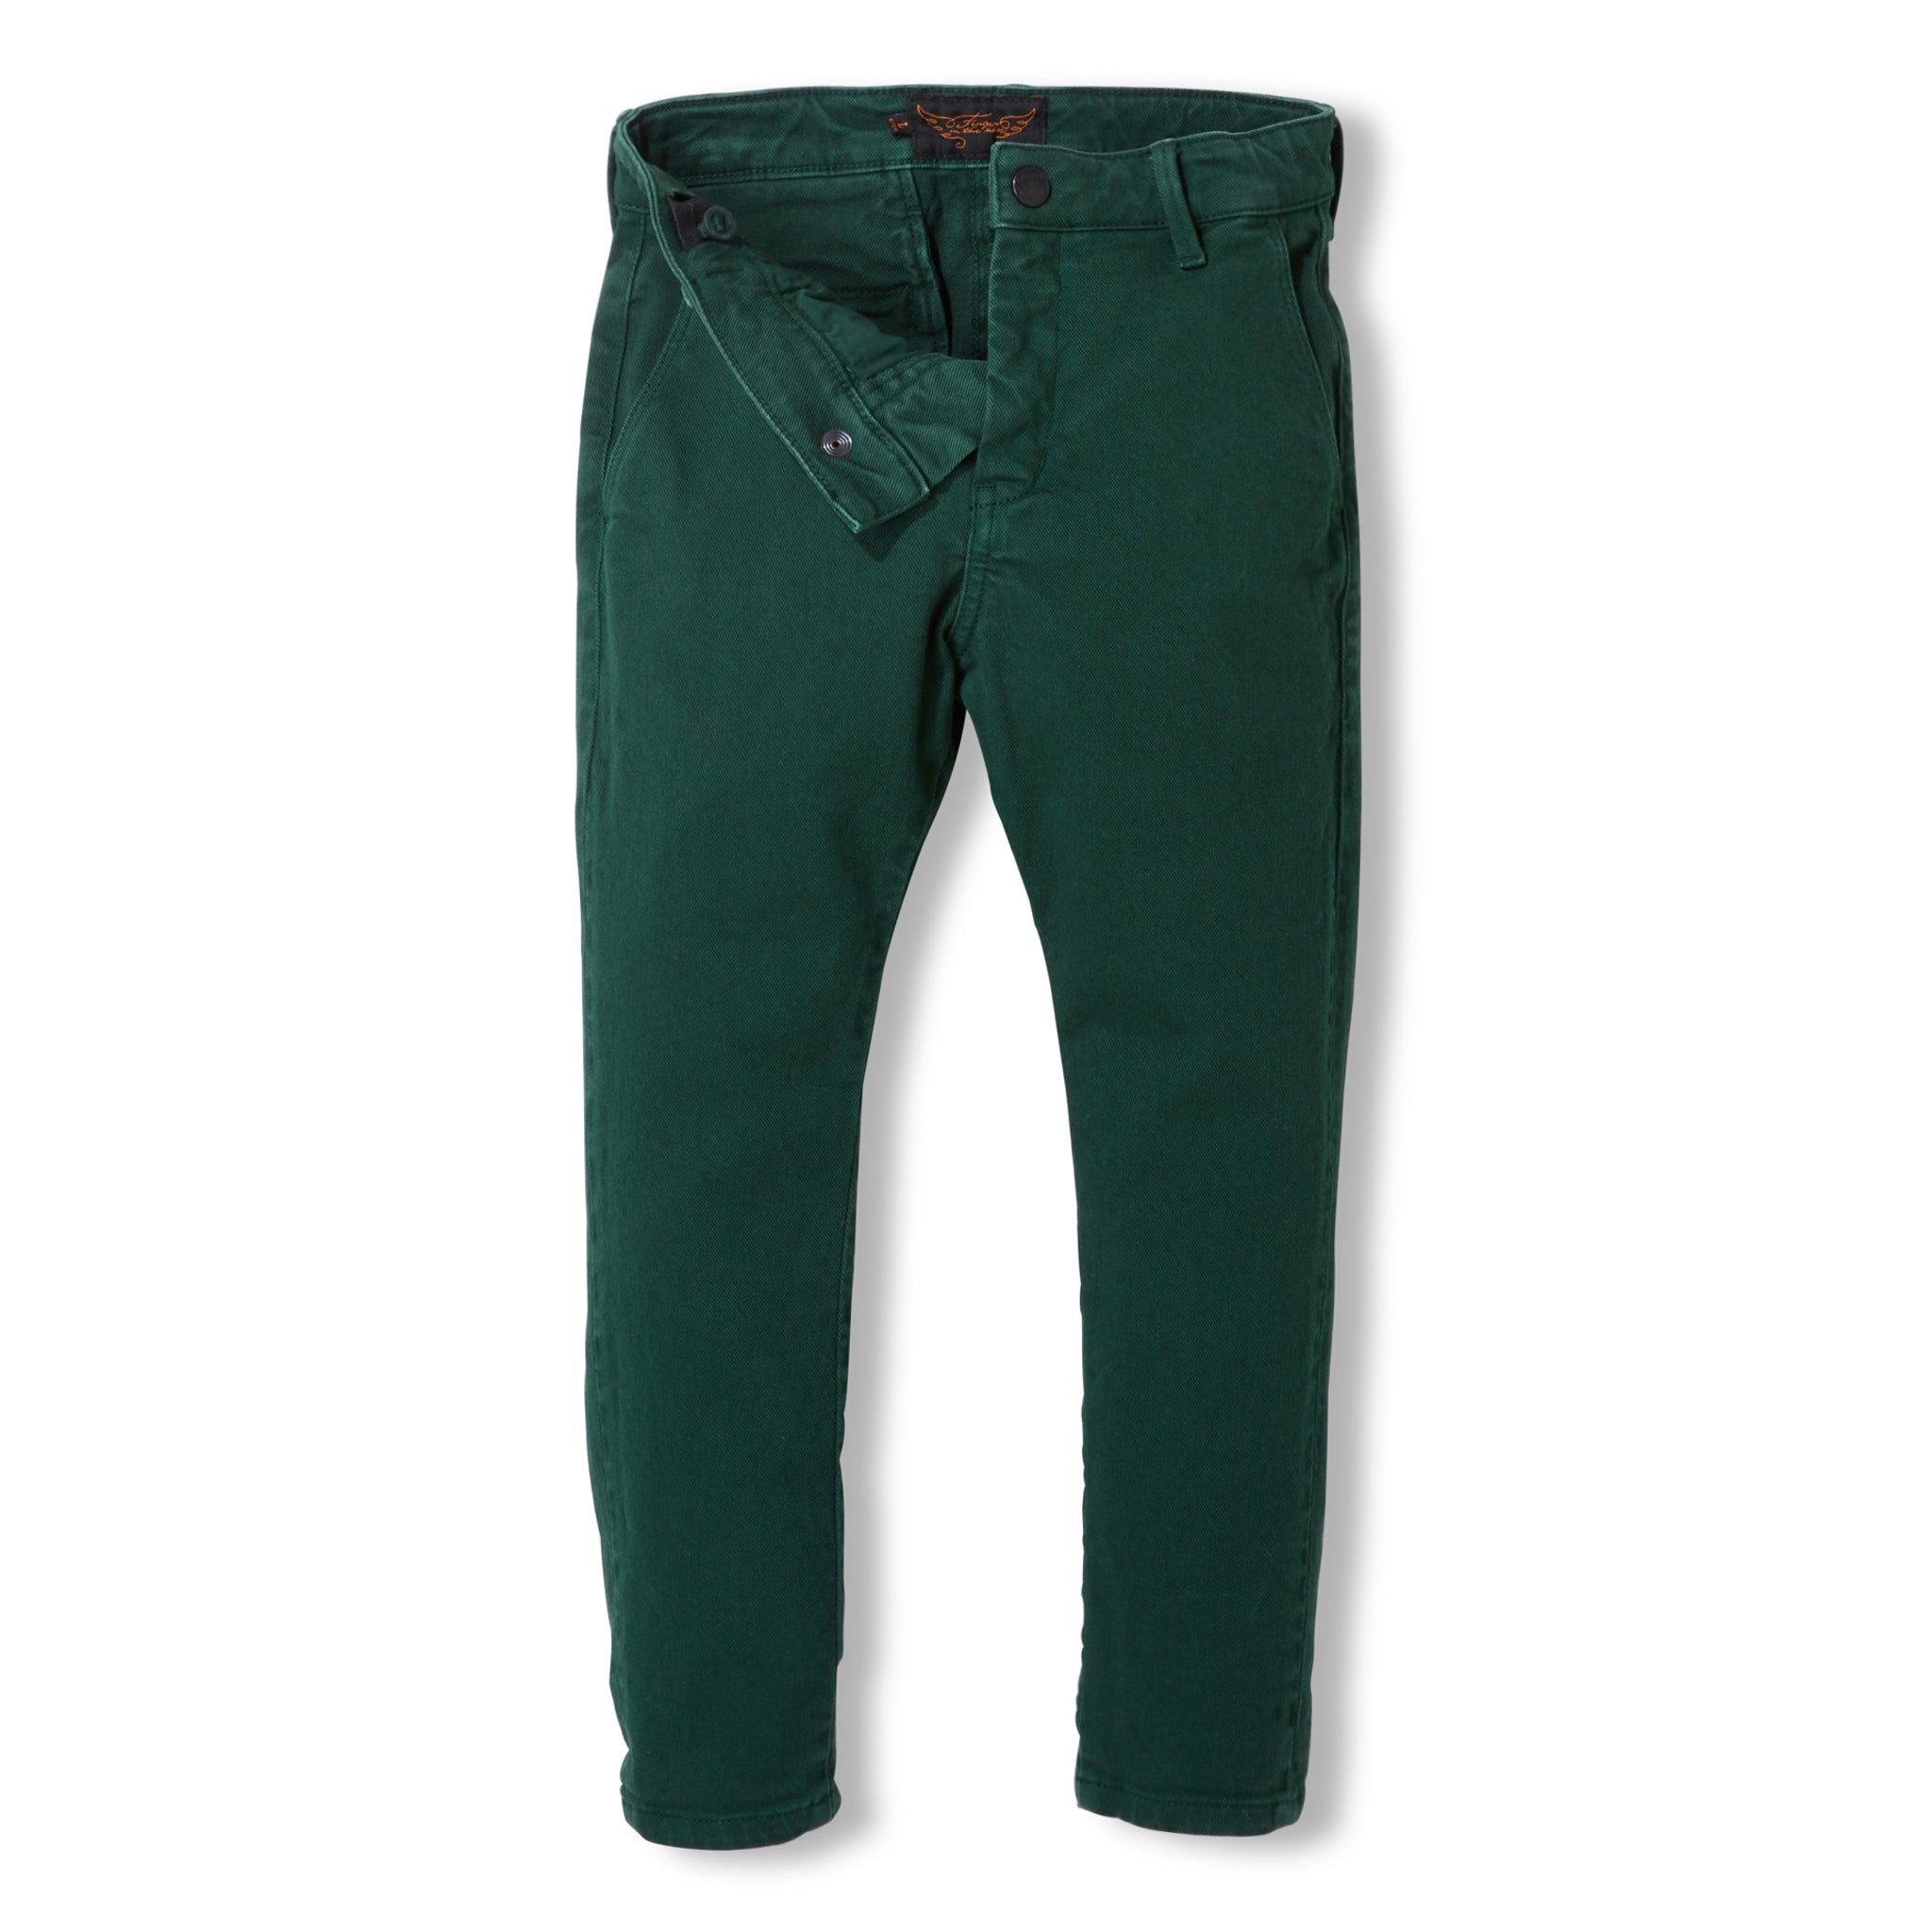 SCOTTY College Green -  Woven Chino Fit Pants 5